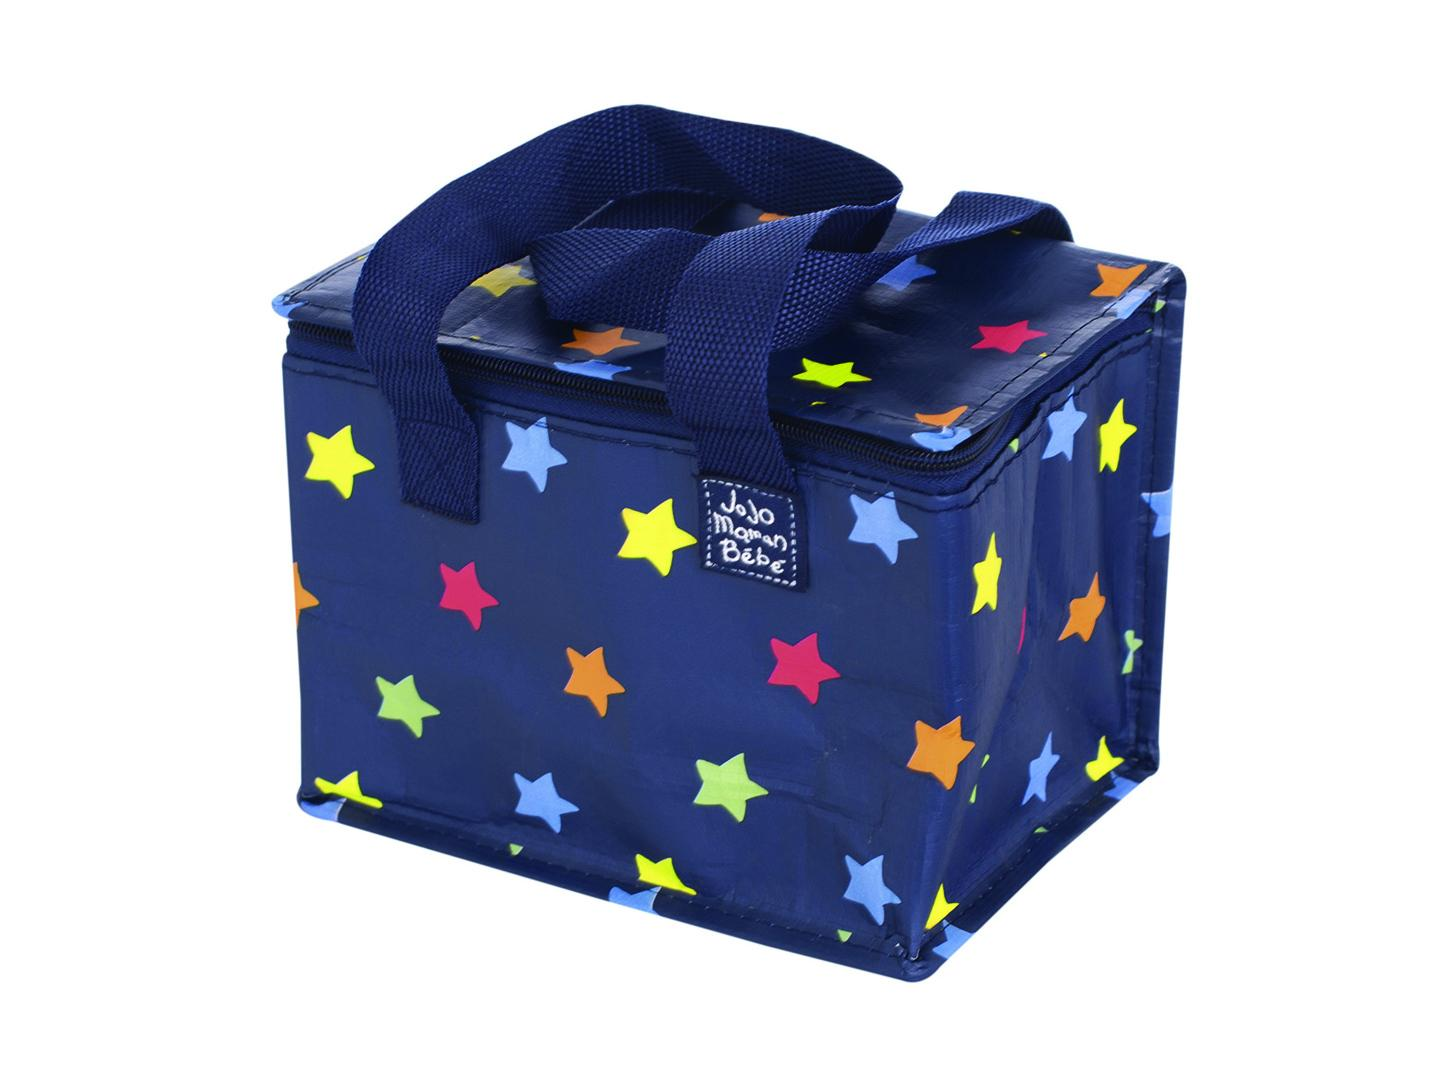 22e3afdd7b78 Best kids' lunch box that is leak-proof, easily washable and fun to use